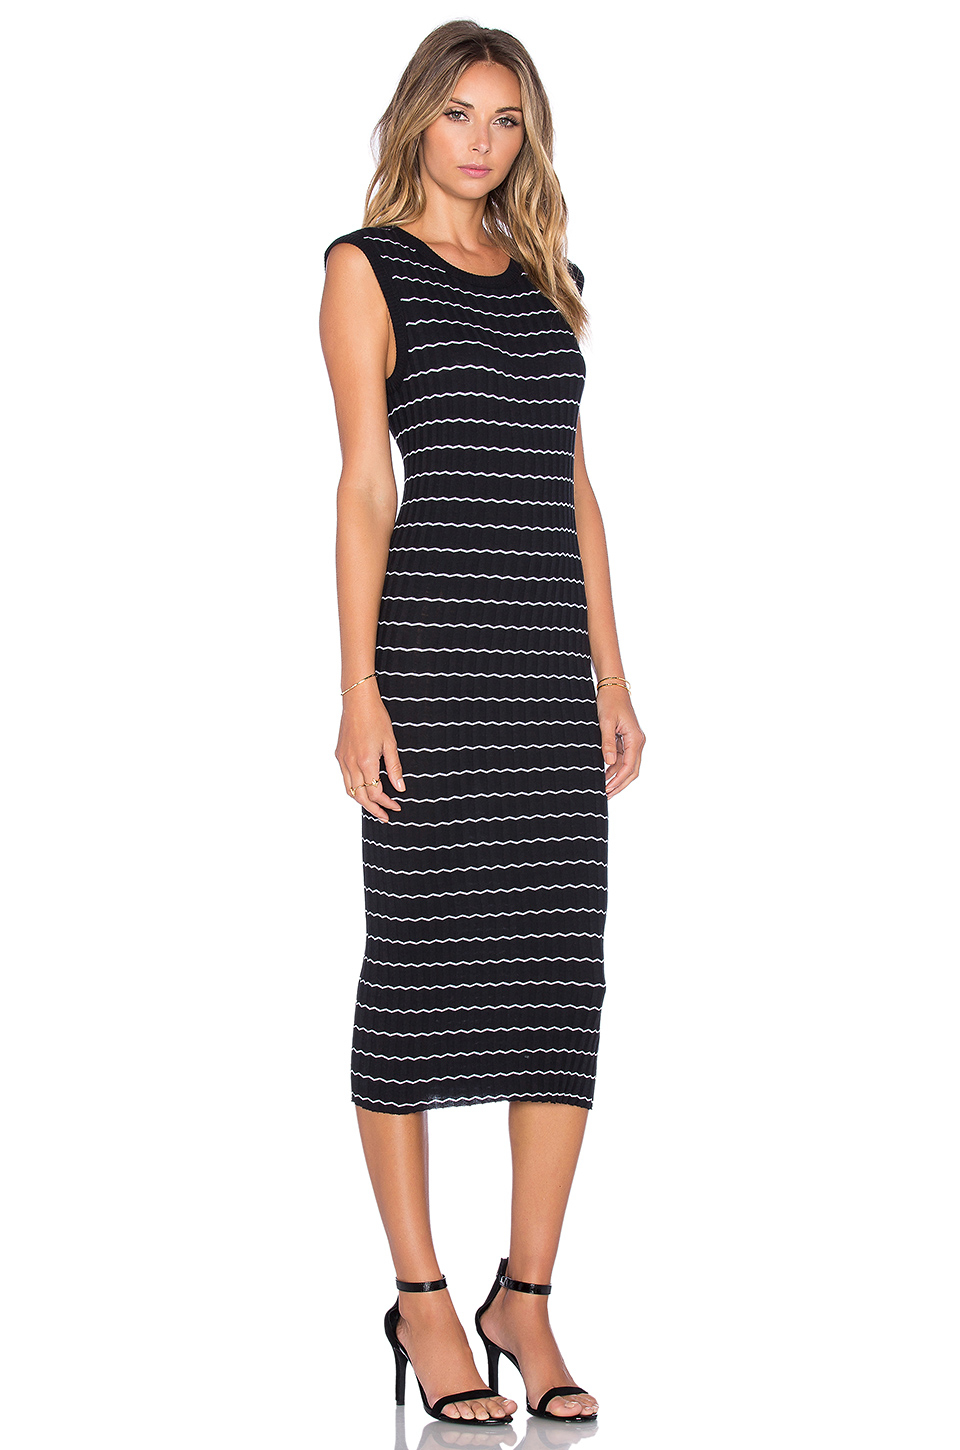 Enza costa Cashmere Muscle Tank Midi Dress in Black | Lyst